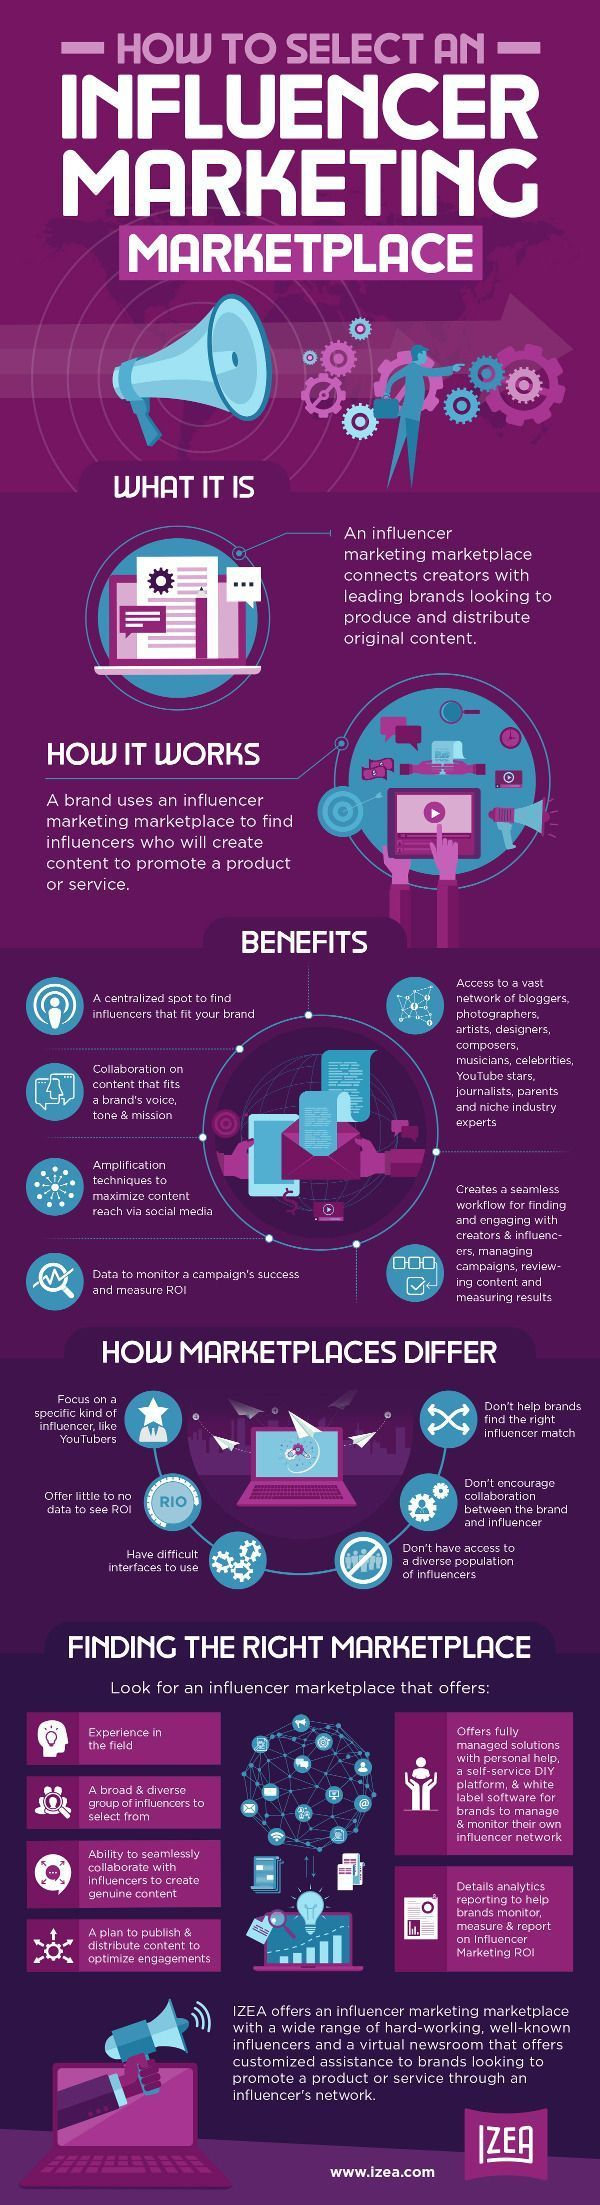 Advertising-Infographics-How-to-Choose-the-Right-Influencer-Marketing-Solution-Infographic Advertising Infographics : How to Choose the Right Influencer Marketing Solution | Infographic